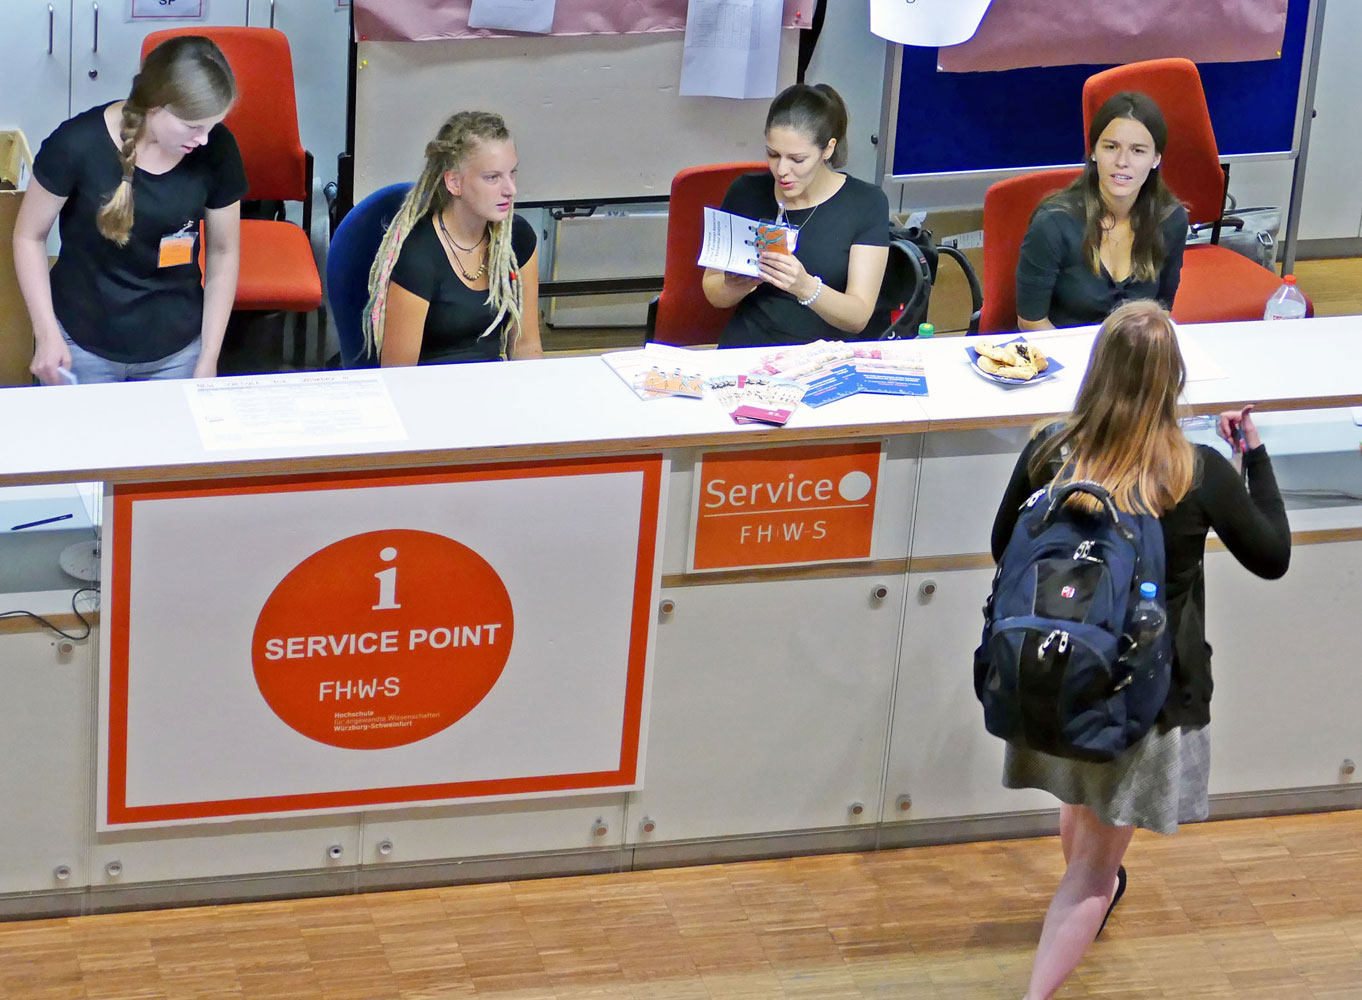 Studentinnen am Service Point der FHWS